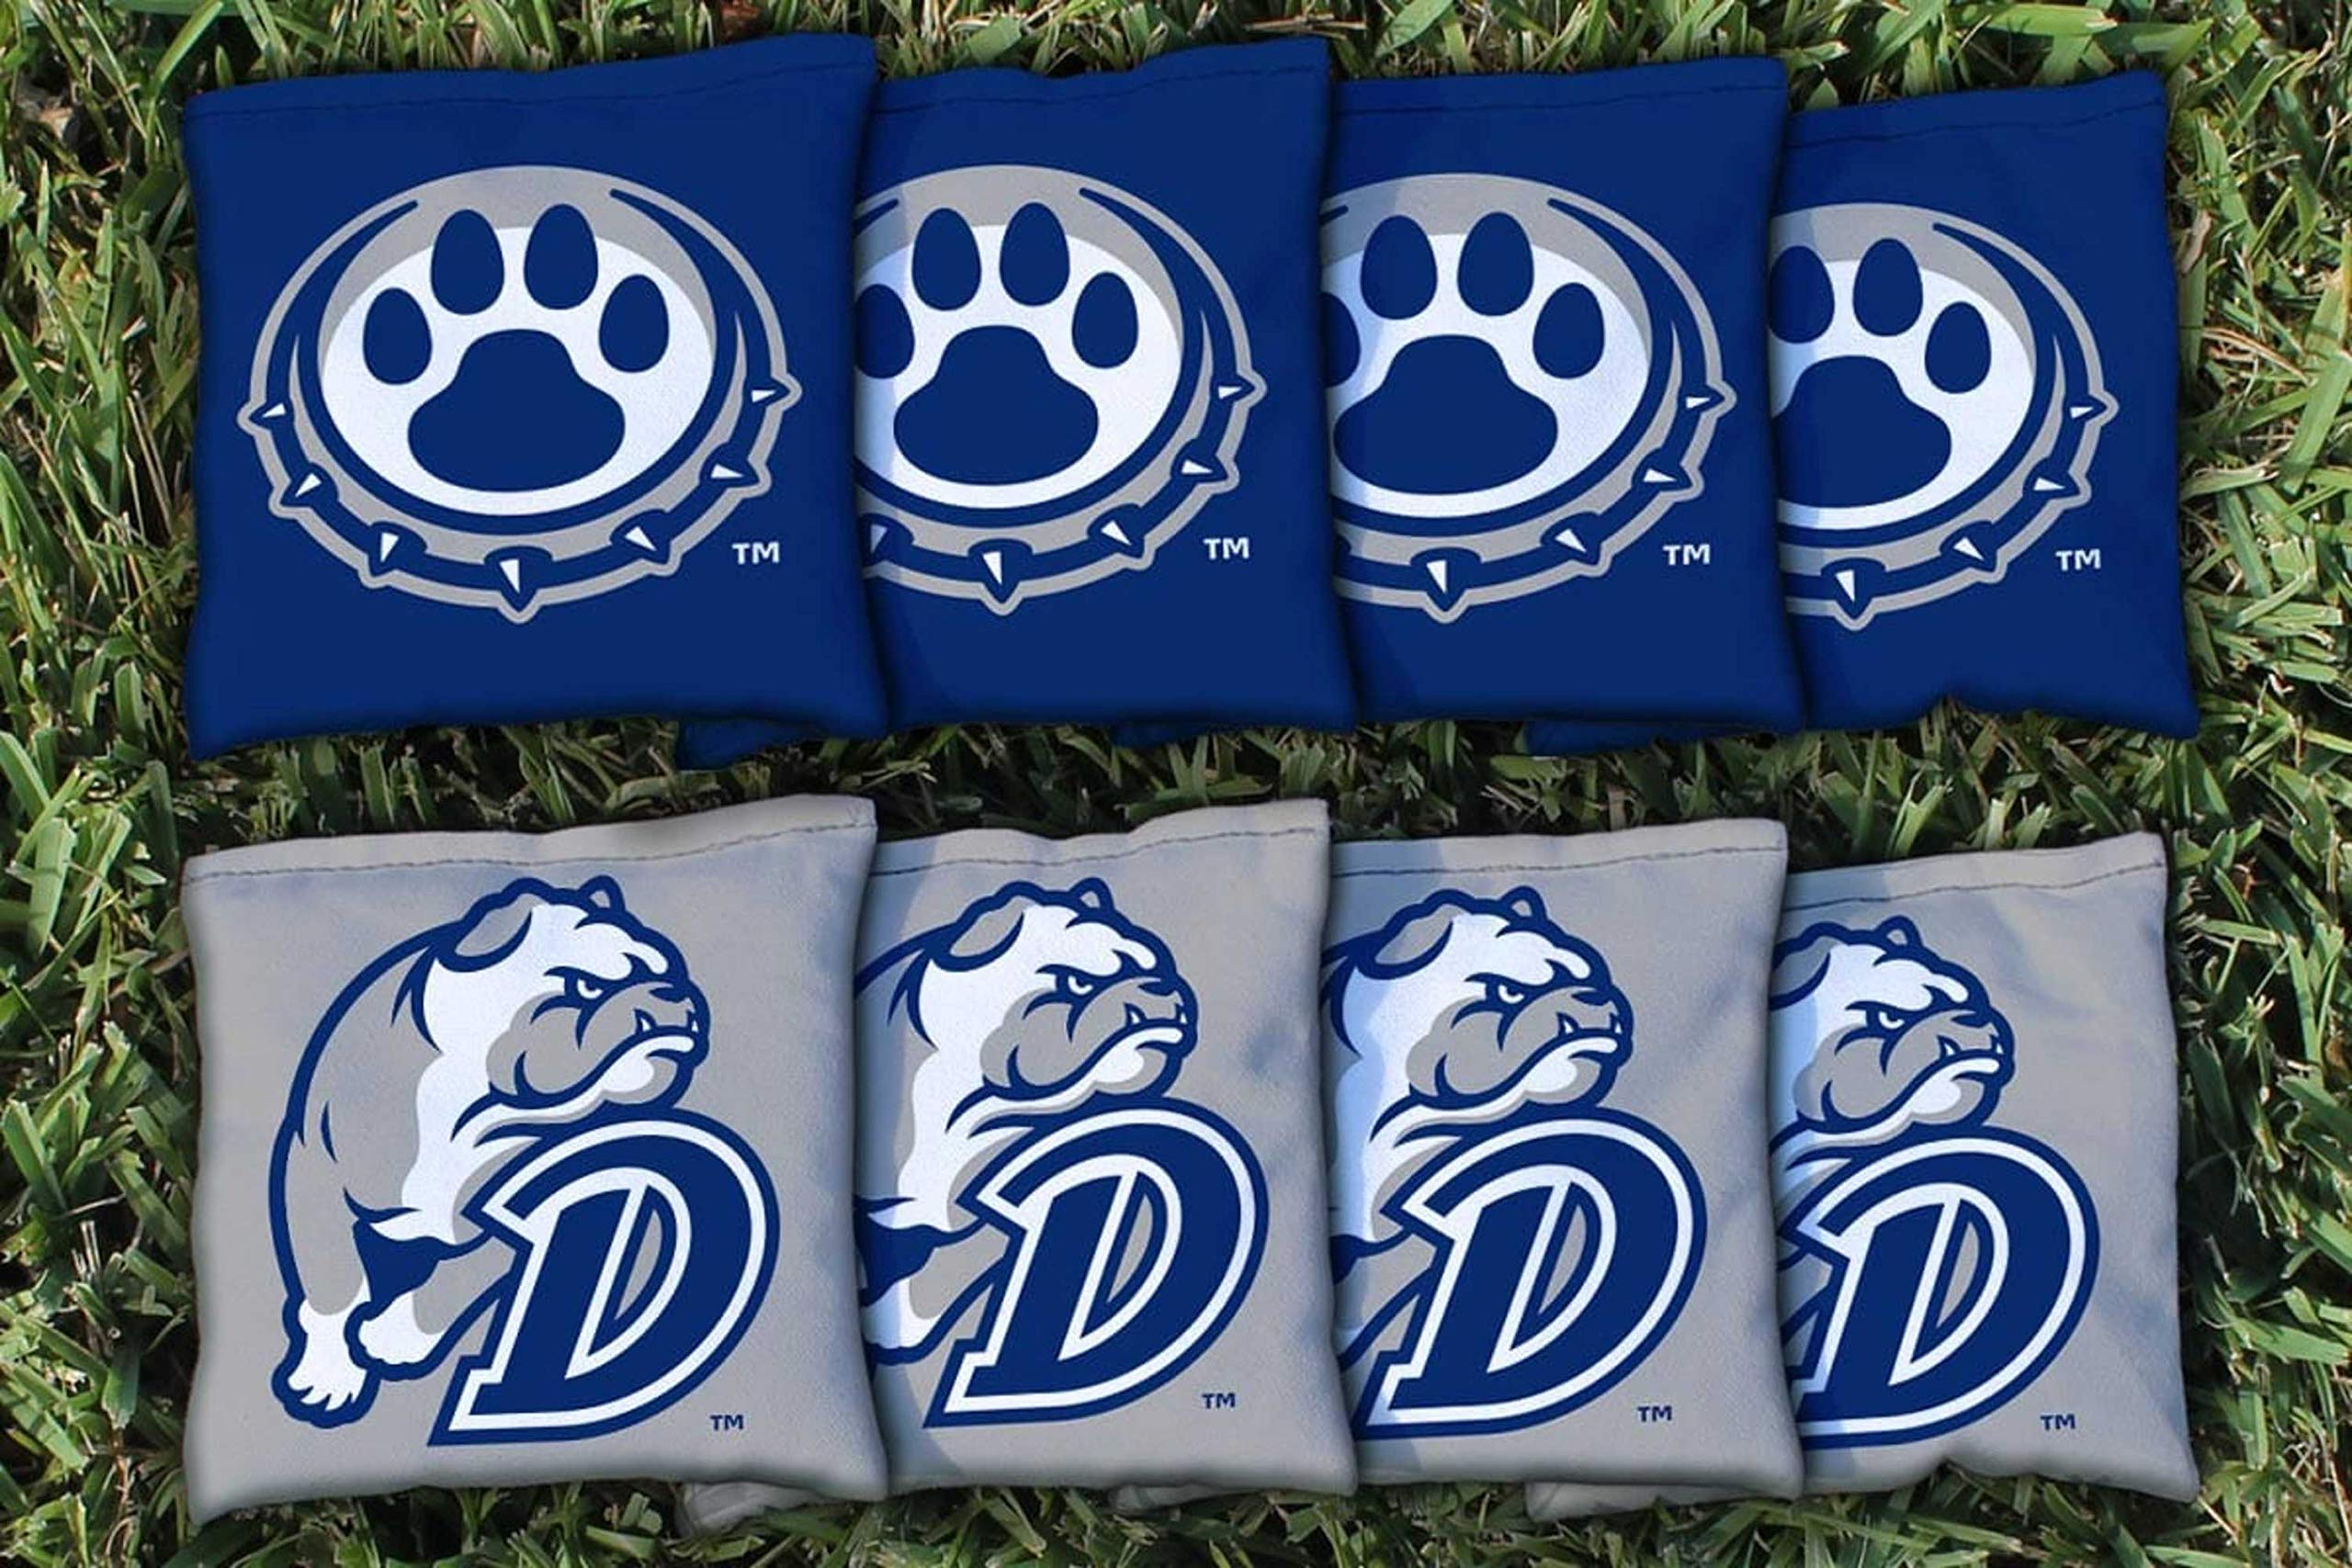 Victory Tailgate NCAA Collegiate Regulation Cornhole Game Bag Set (8 Bags Included, Corn-Filled) - Drake Bulldogs by Victory Tailgate